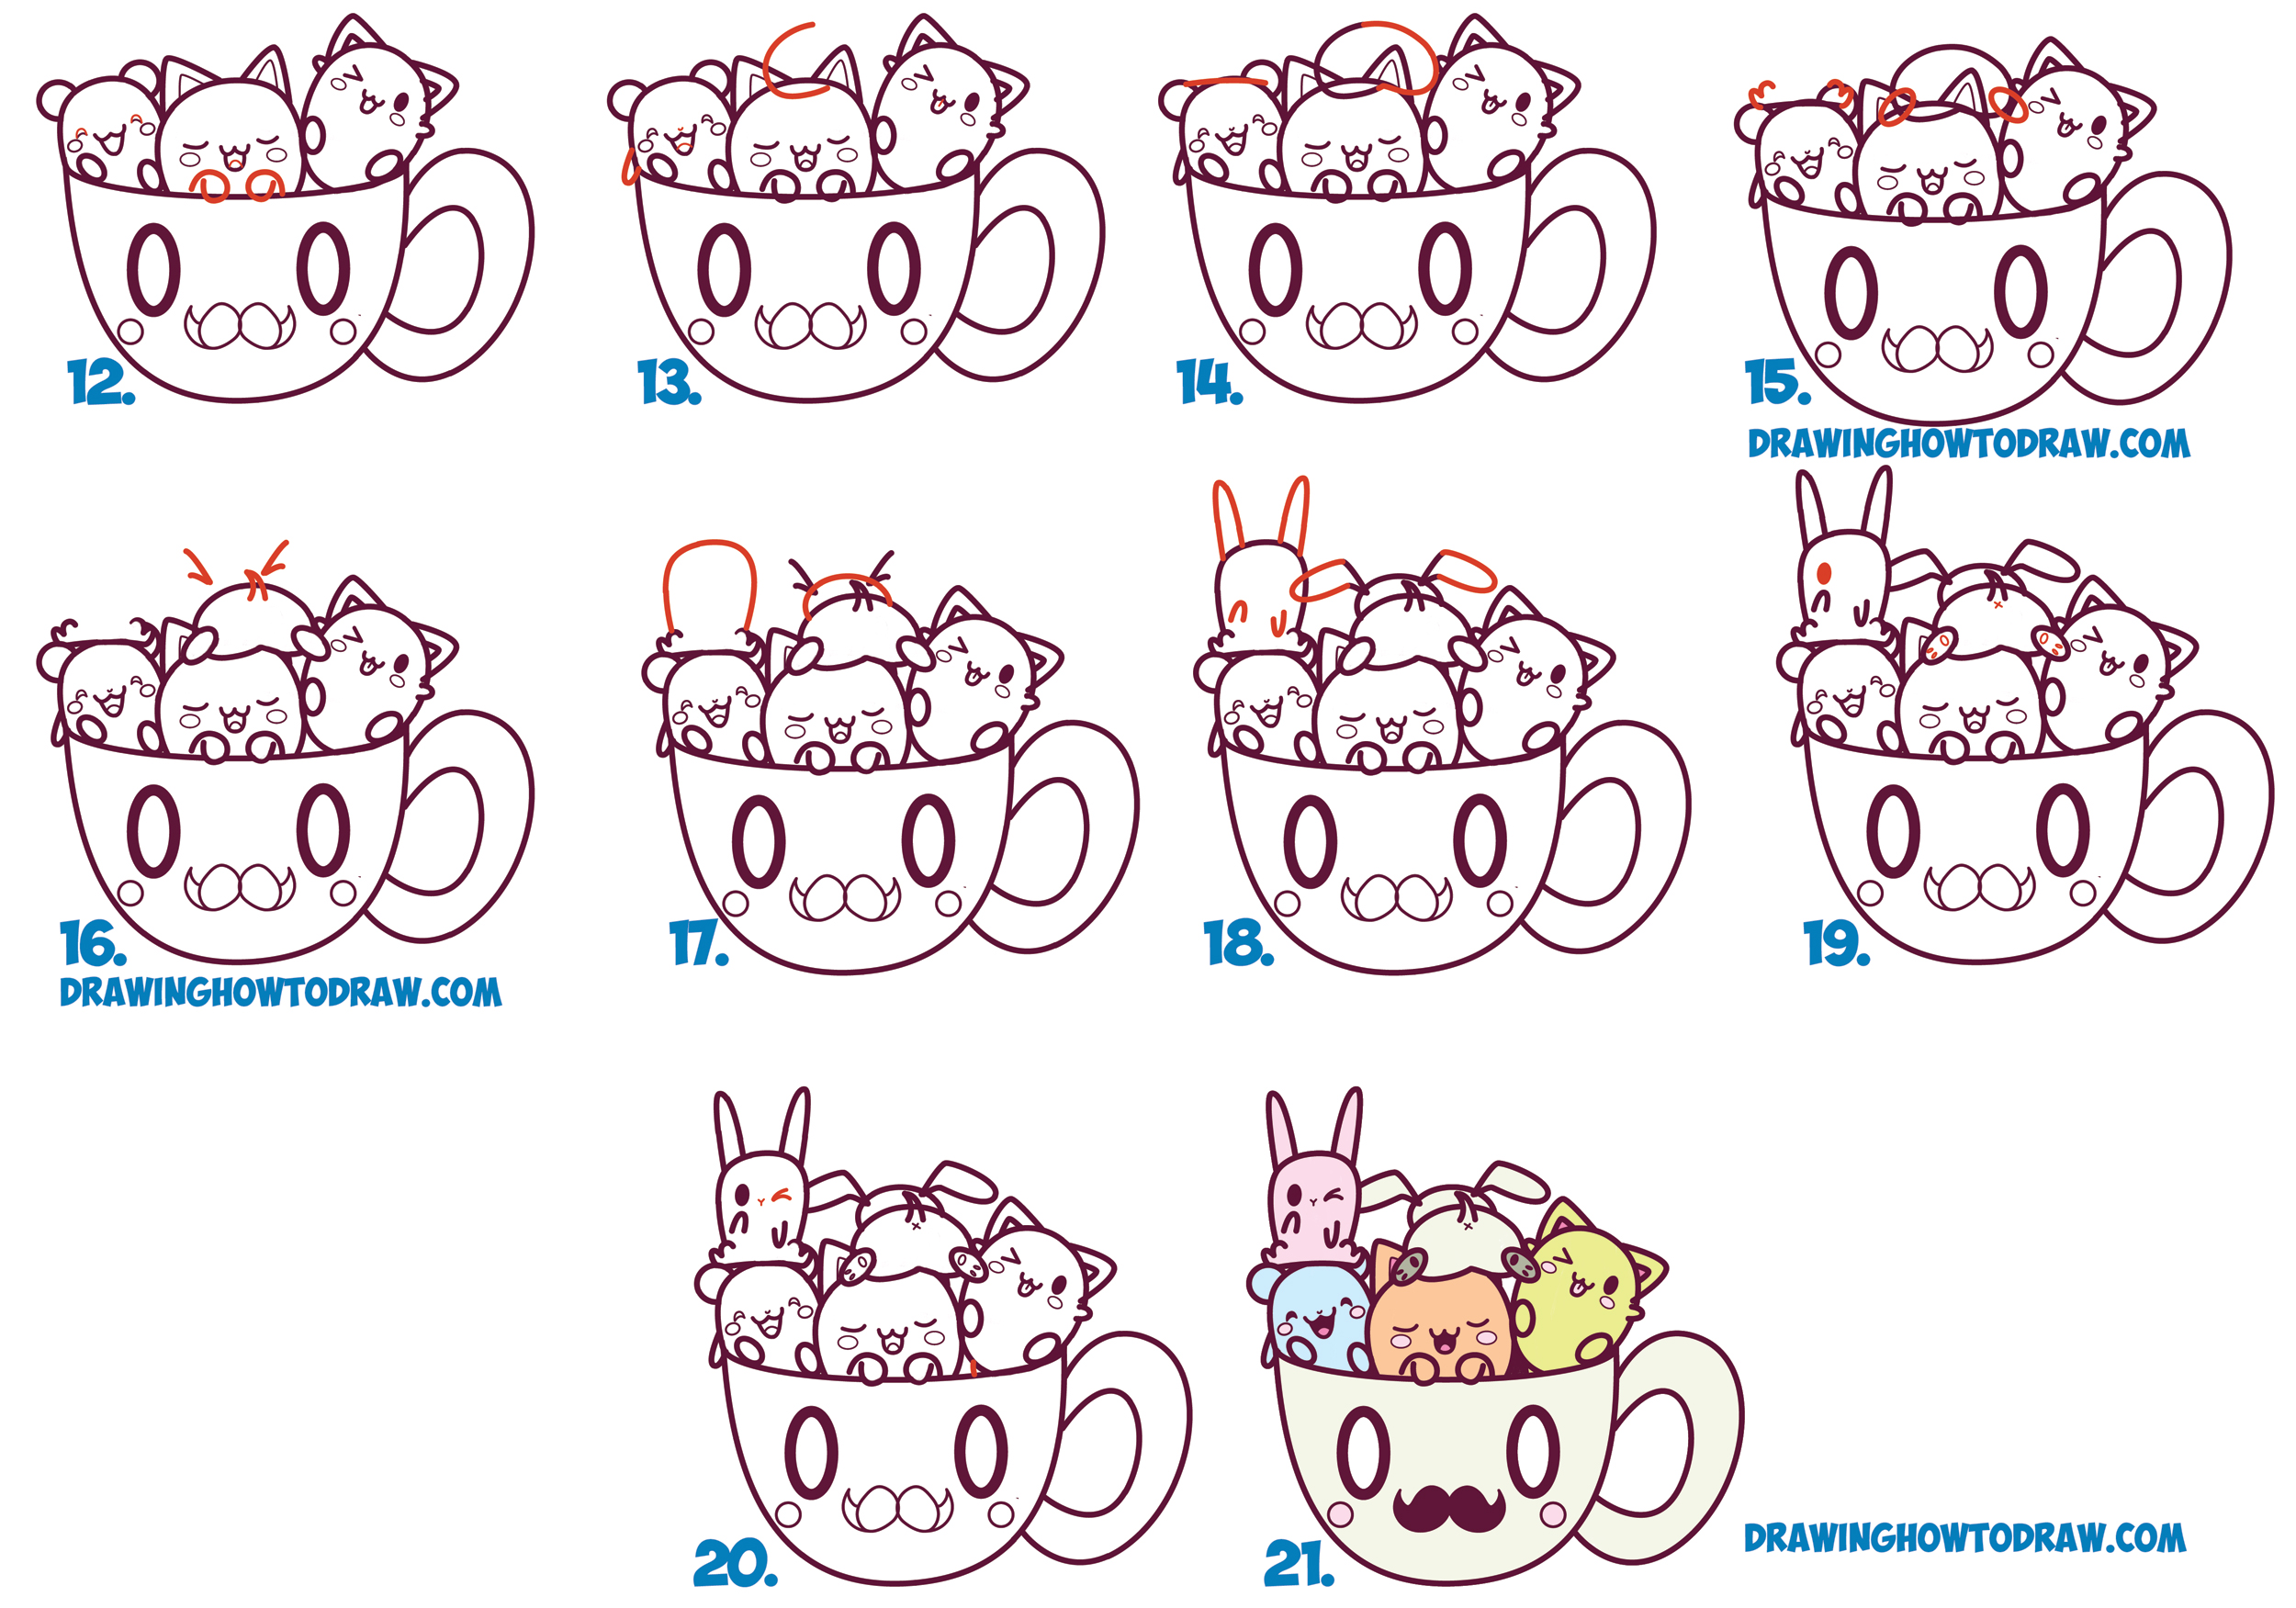 Learn How To Draw Cute Kawaii Animals And Characters In A Coffee Mug With A  Mustache